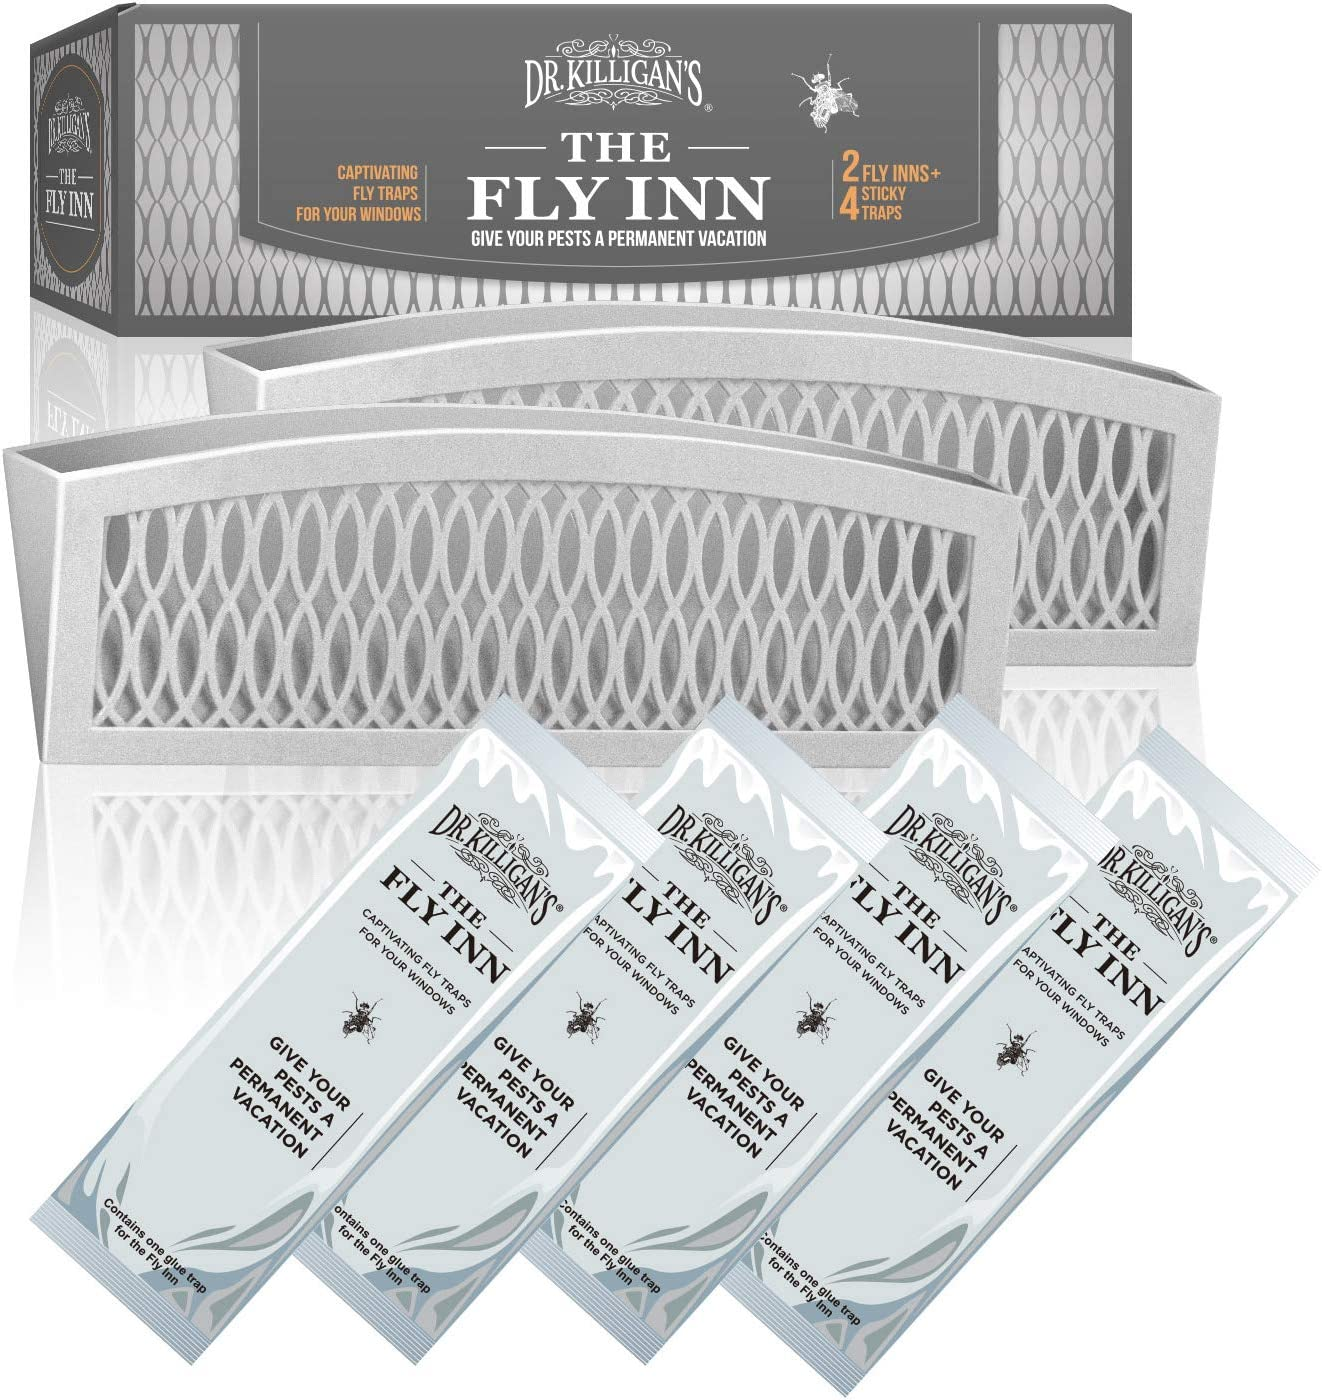 Dr. Killigan's The Fly Inn | Window Fly Traps | Sticky Fly Strip | Indoor Insect Trap | Catches and Hides Bugs | Better Than Fly Paper or Ribbon | Get Rid of Fruit Flies | (2+4, Gray)